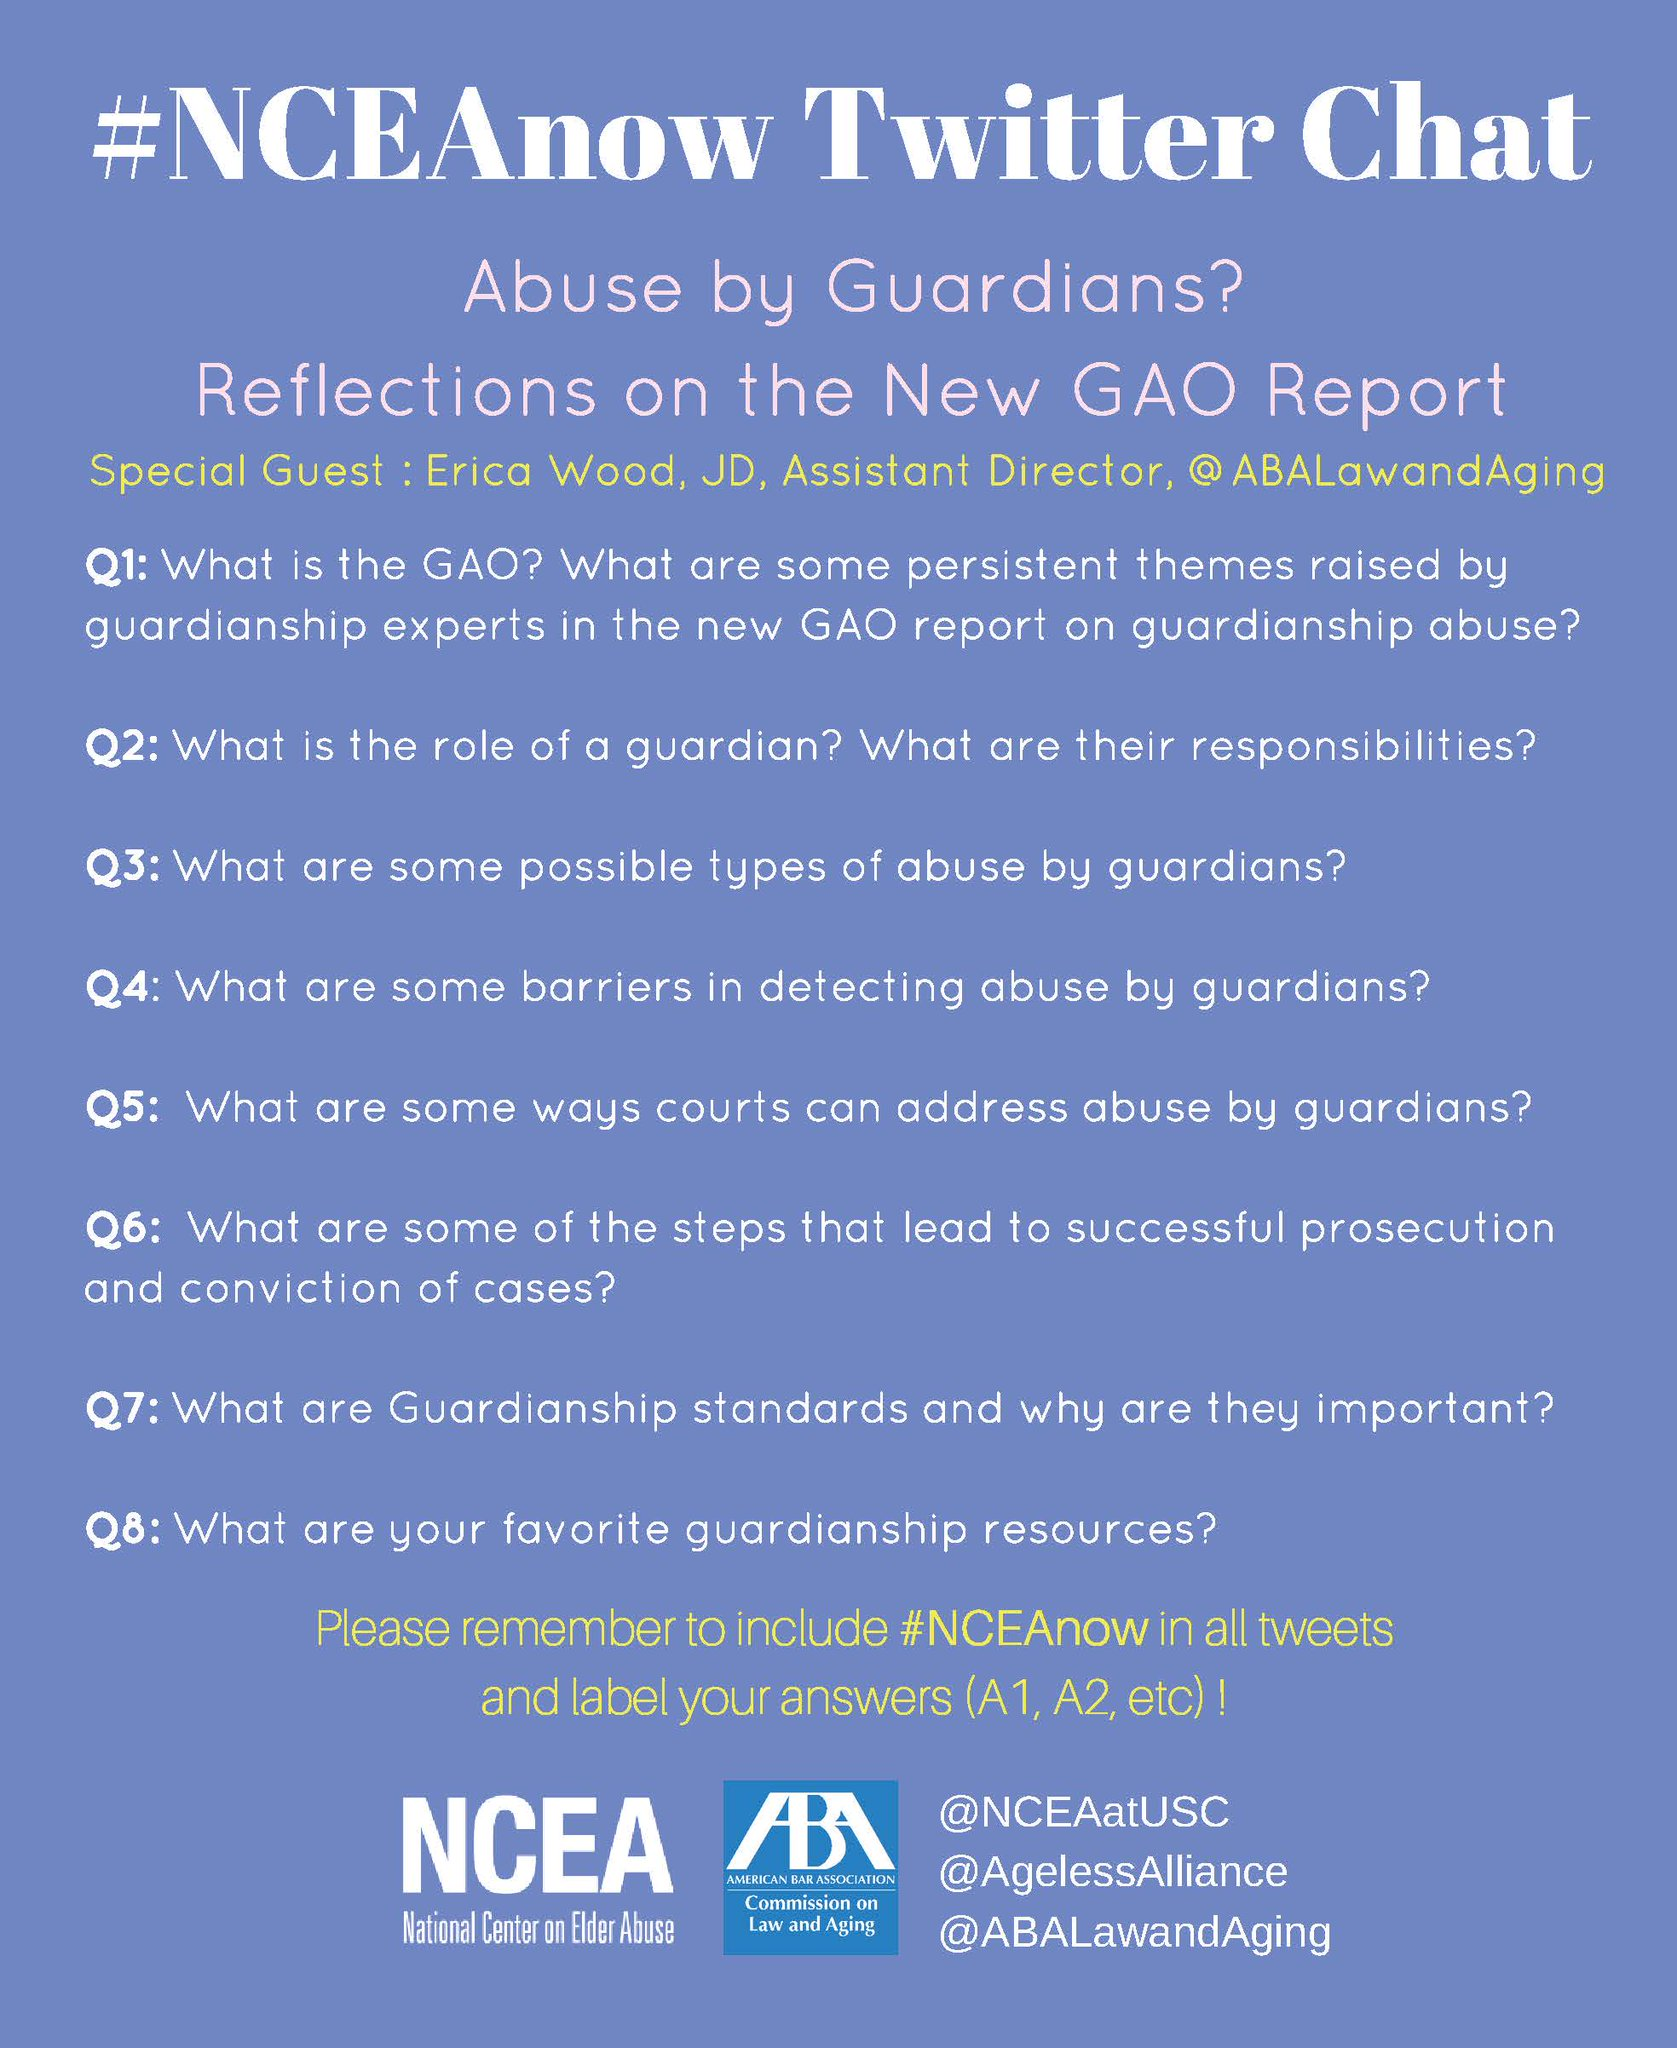 Thumbnail for 2/16/17 #NCEAnow Chat: Abuse by Guardians? Reflections on the New GAO Report